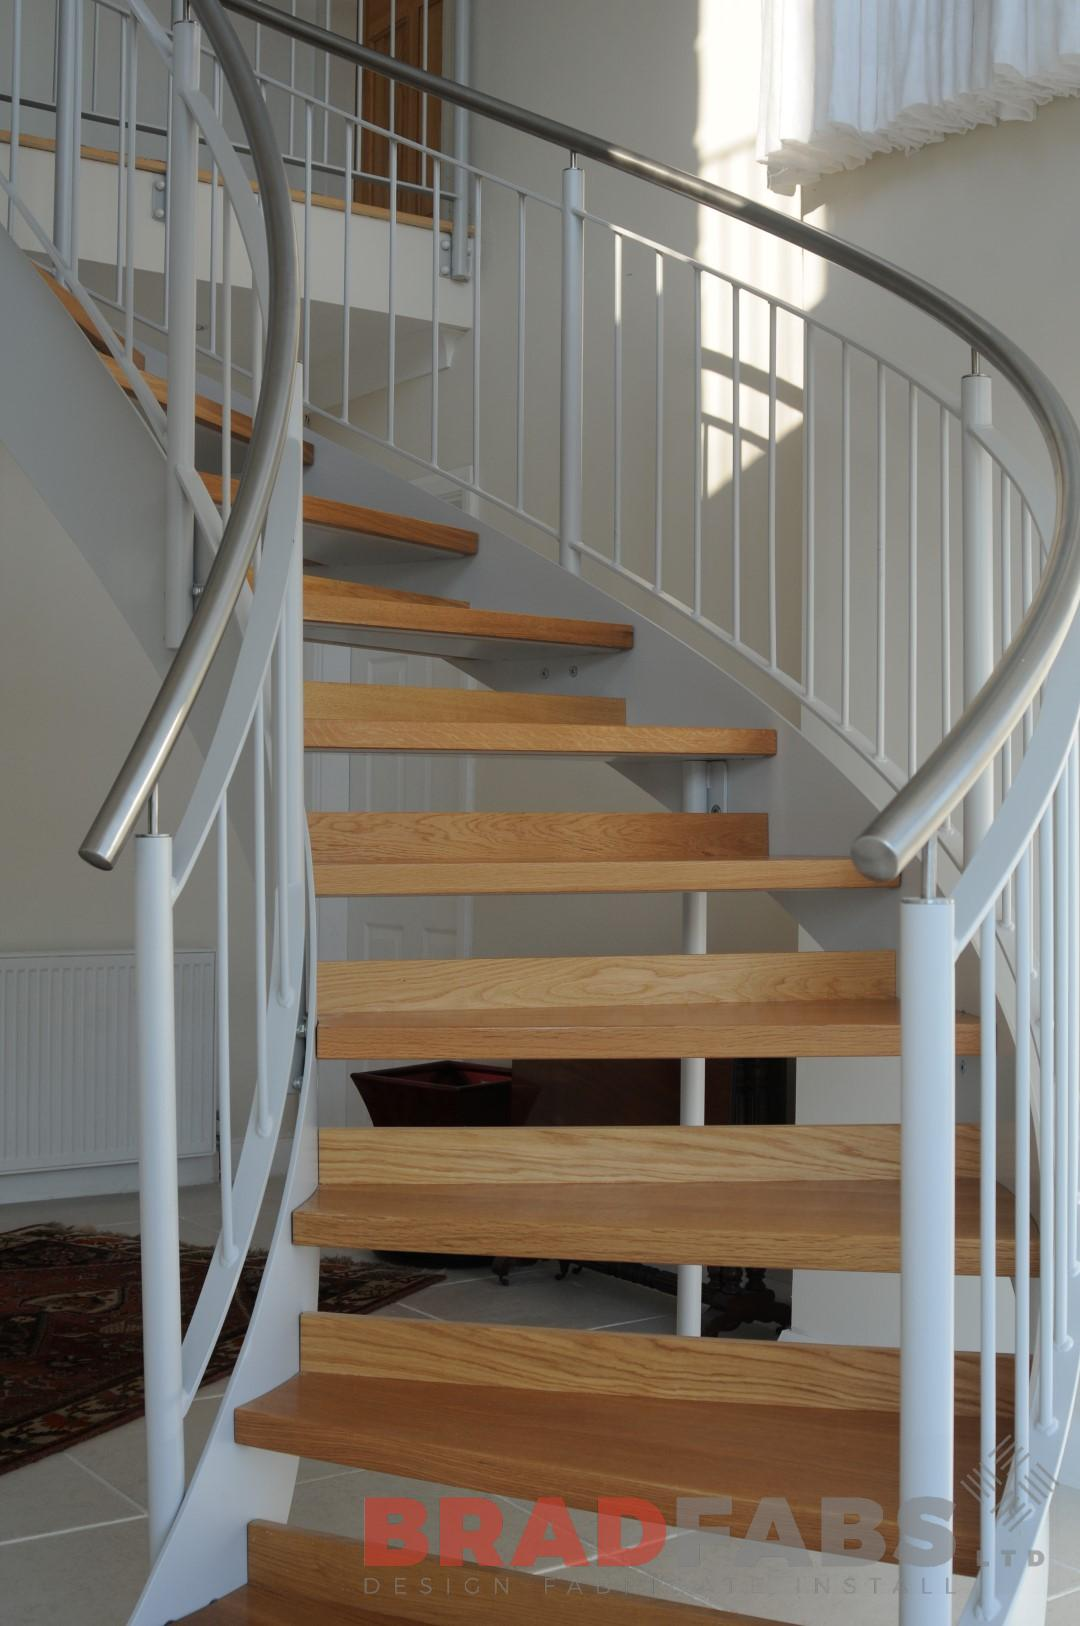 Helix staircase manufactured by Bradfabs